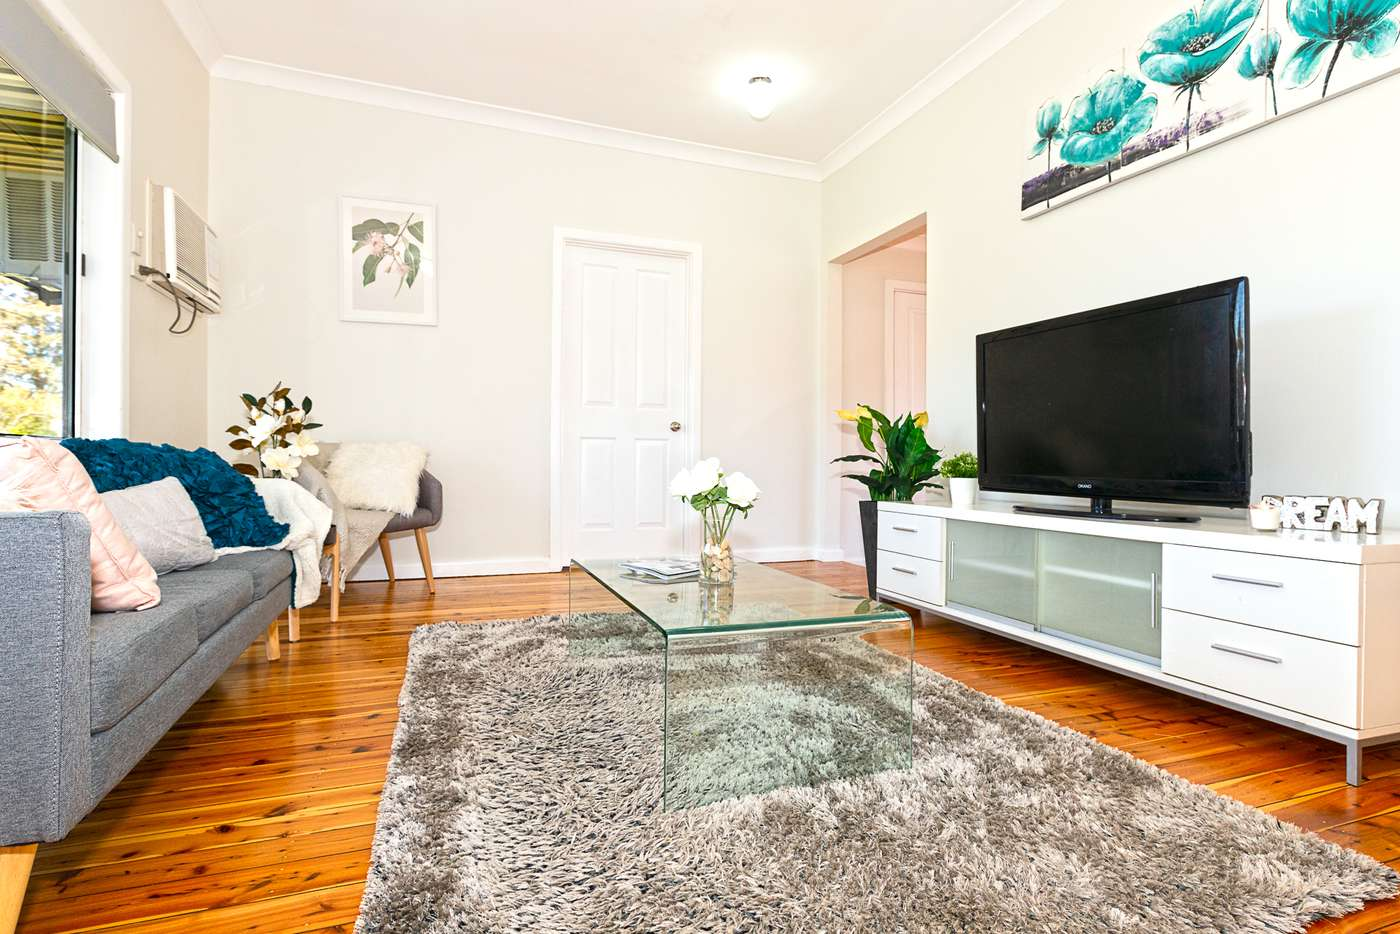 Main view of Homely house listing, 5 Eden Street, Marayong NSW 2148